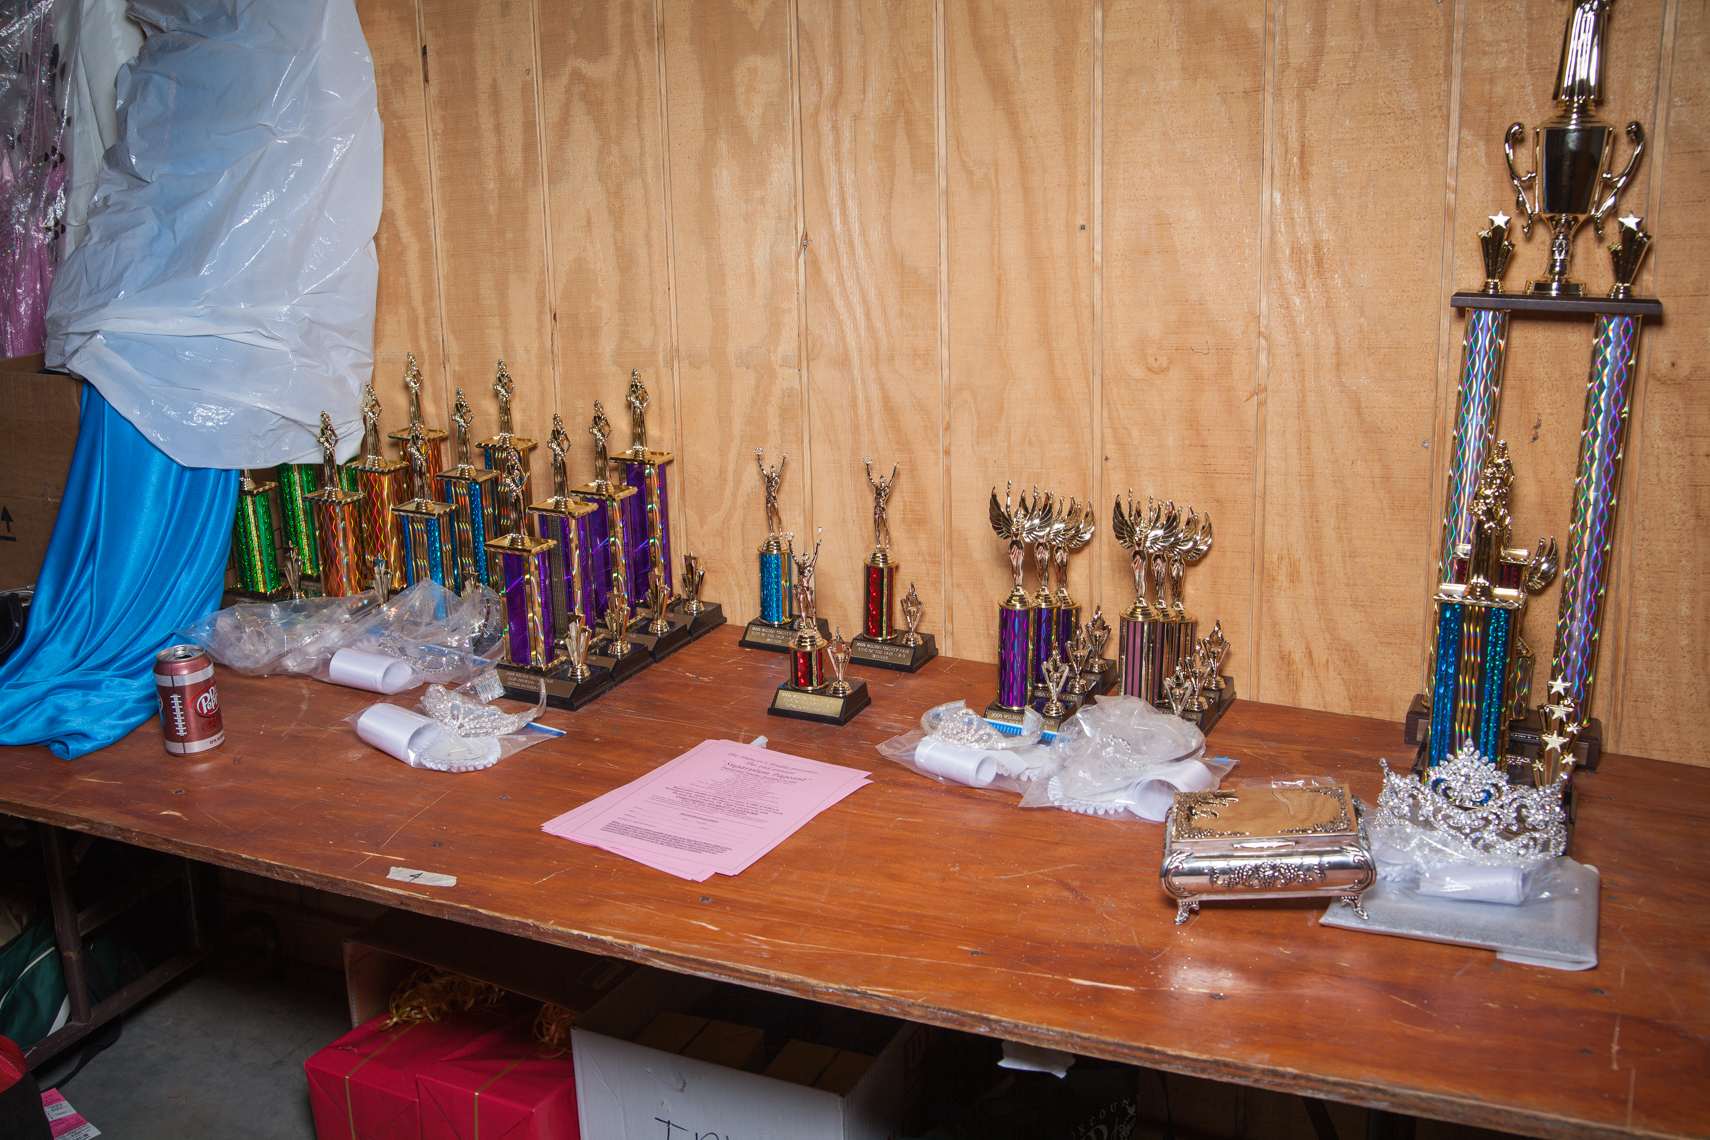 Beauty patent and talent show contest trophies, Wilson County Fair, Lebanon, Tennessee